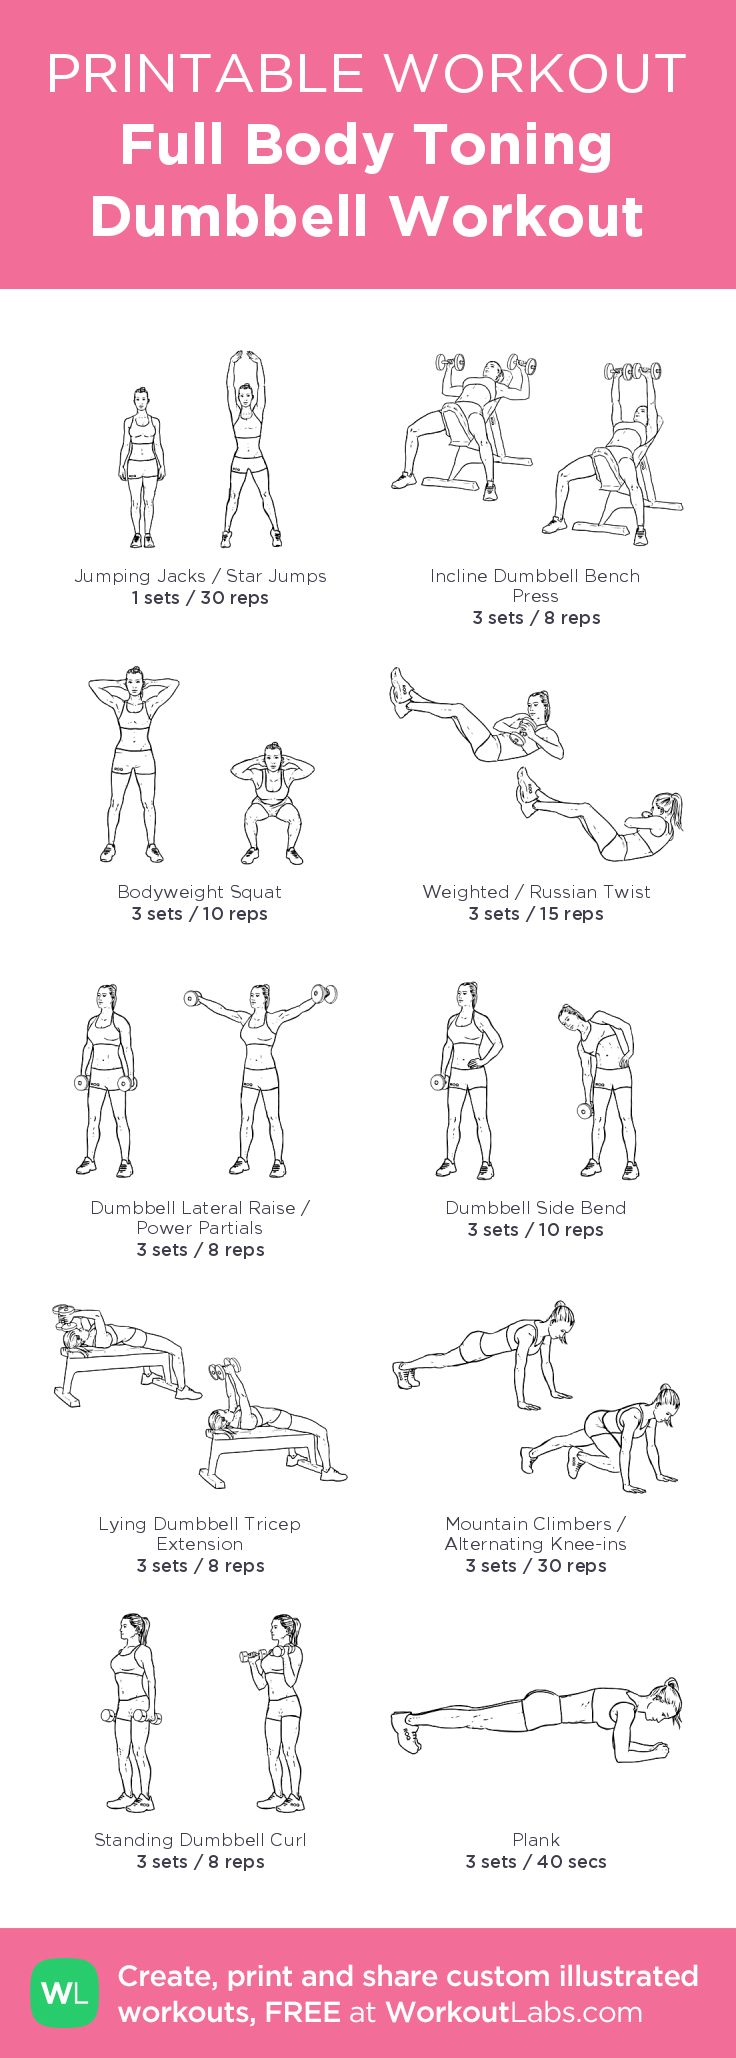 Full Body Toning Dumbbell Workout: my visual workout created at WorkoutLabs.com • Click through to customize and download as a FREE PDF! #customworkout